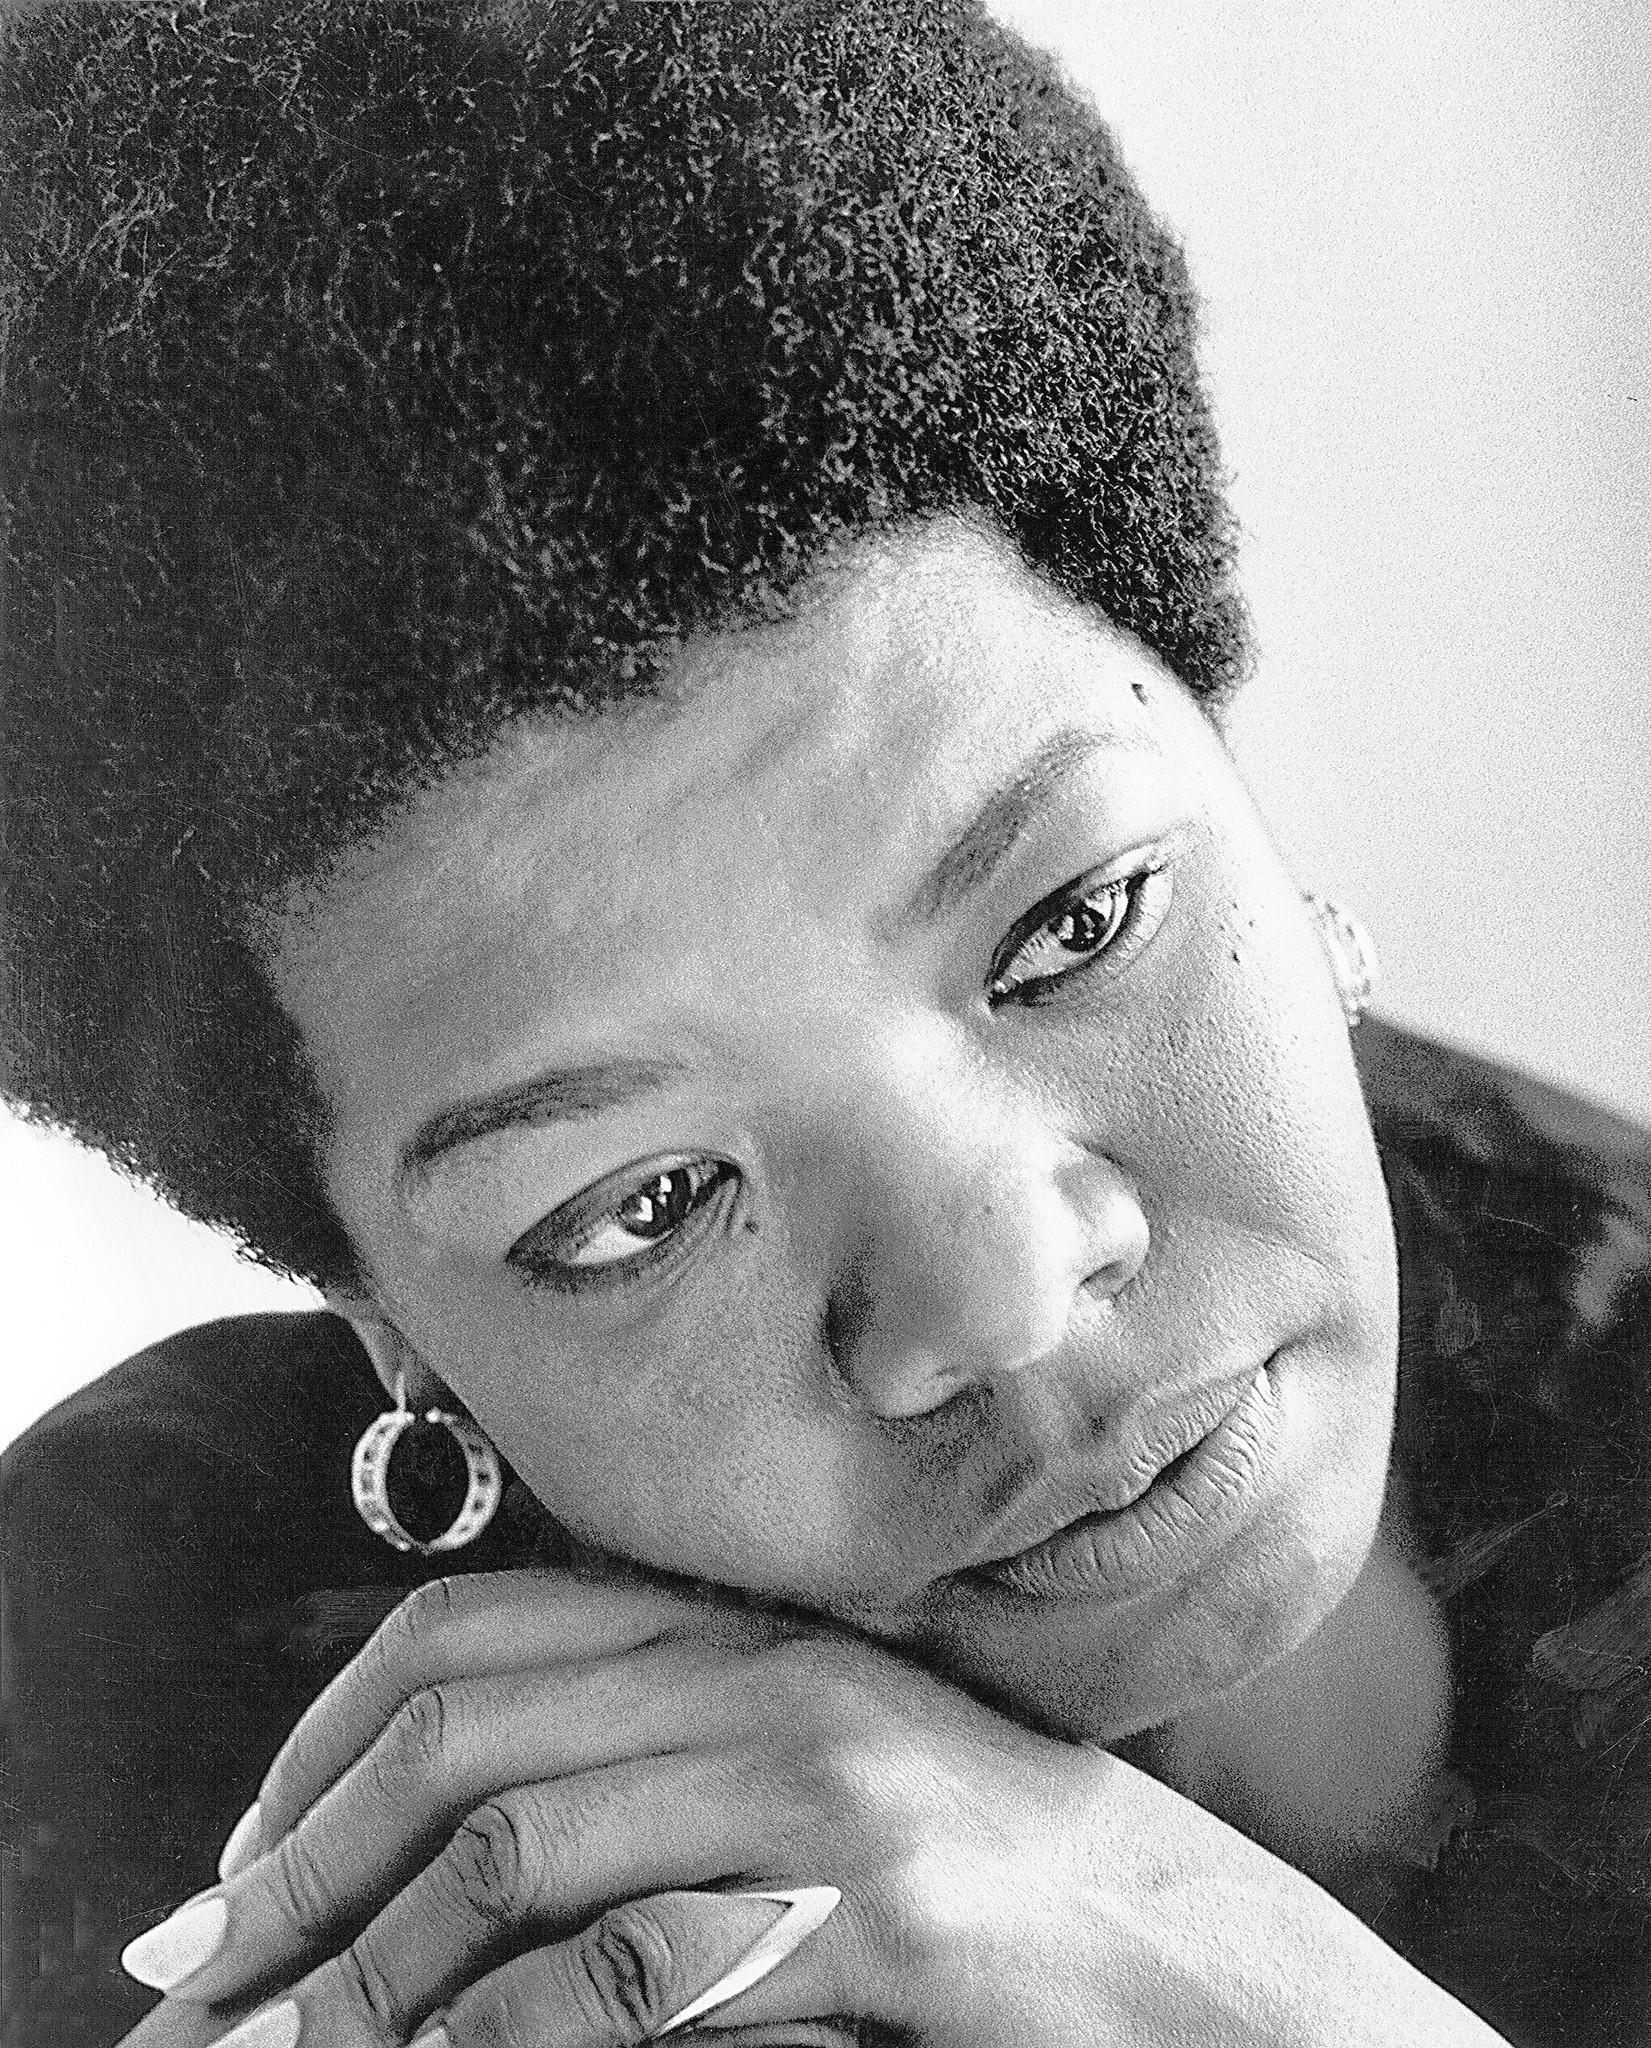 Following Maya Angelou's death, writer Beth Kephart highlights some of Angelou's works that contributed to her lasting impact on the world.